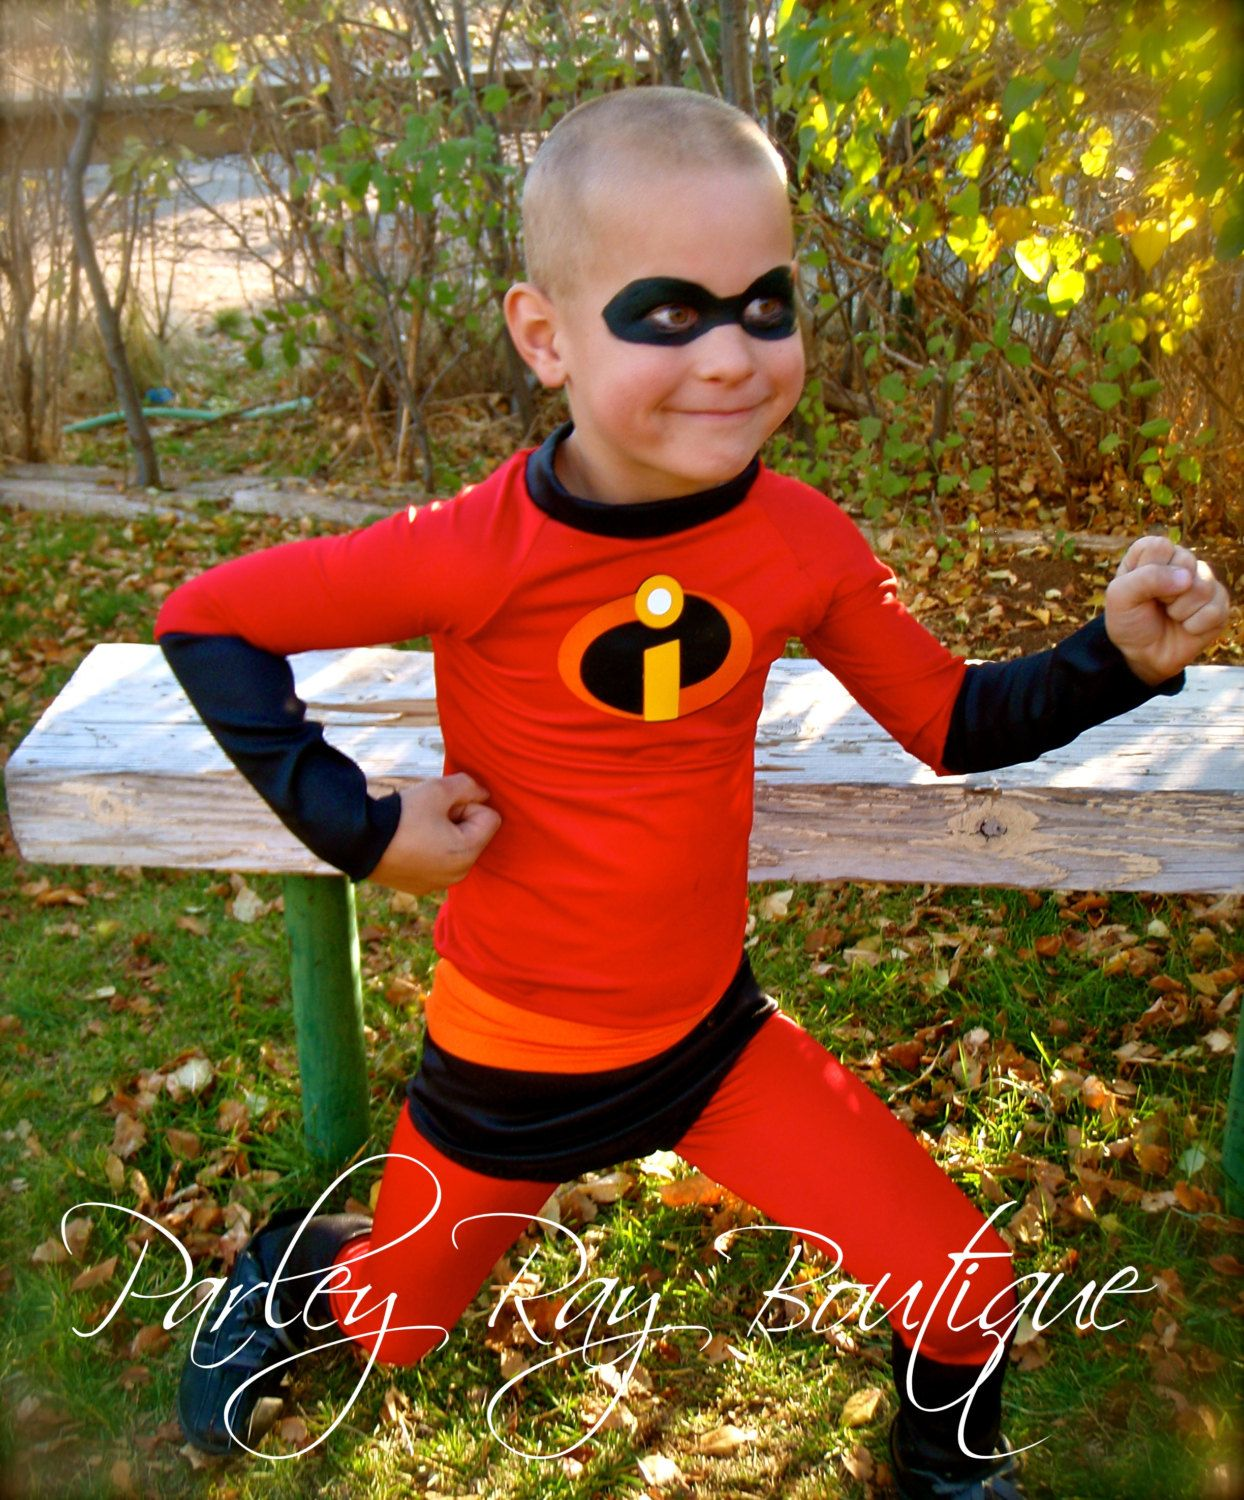 These Sanskari Women Dressed Up For Halloween Will Scare: Parley Ray's Incredibles Inspired Costume- Dash/ Mr